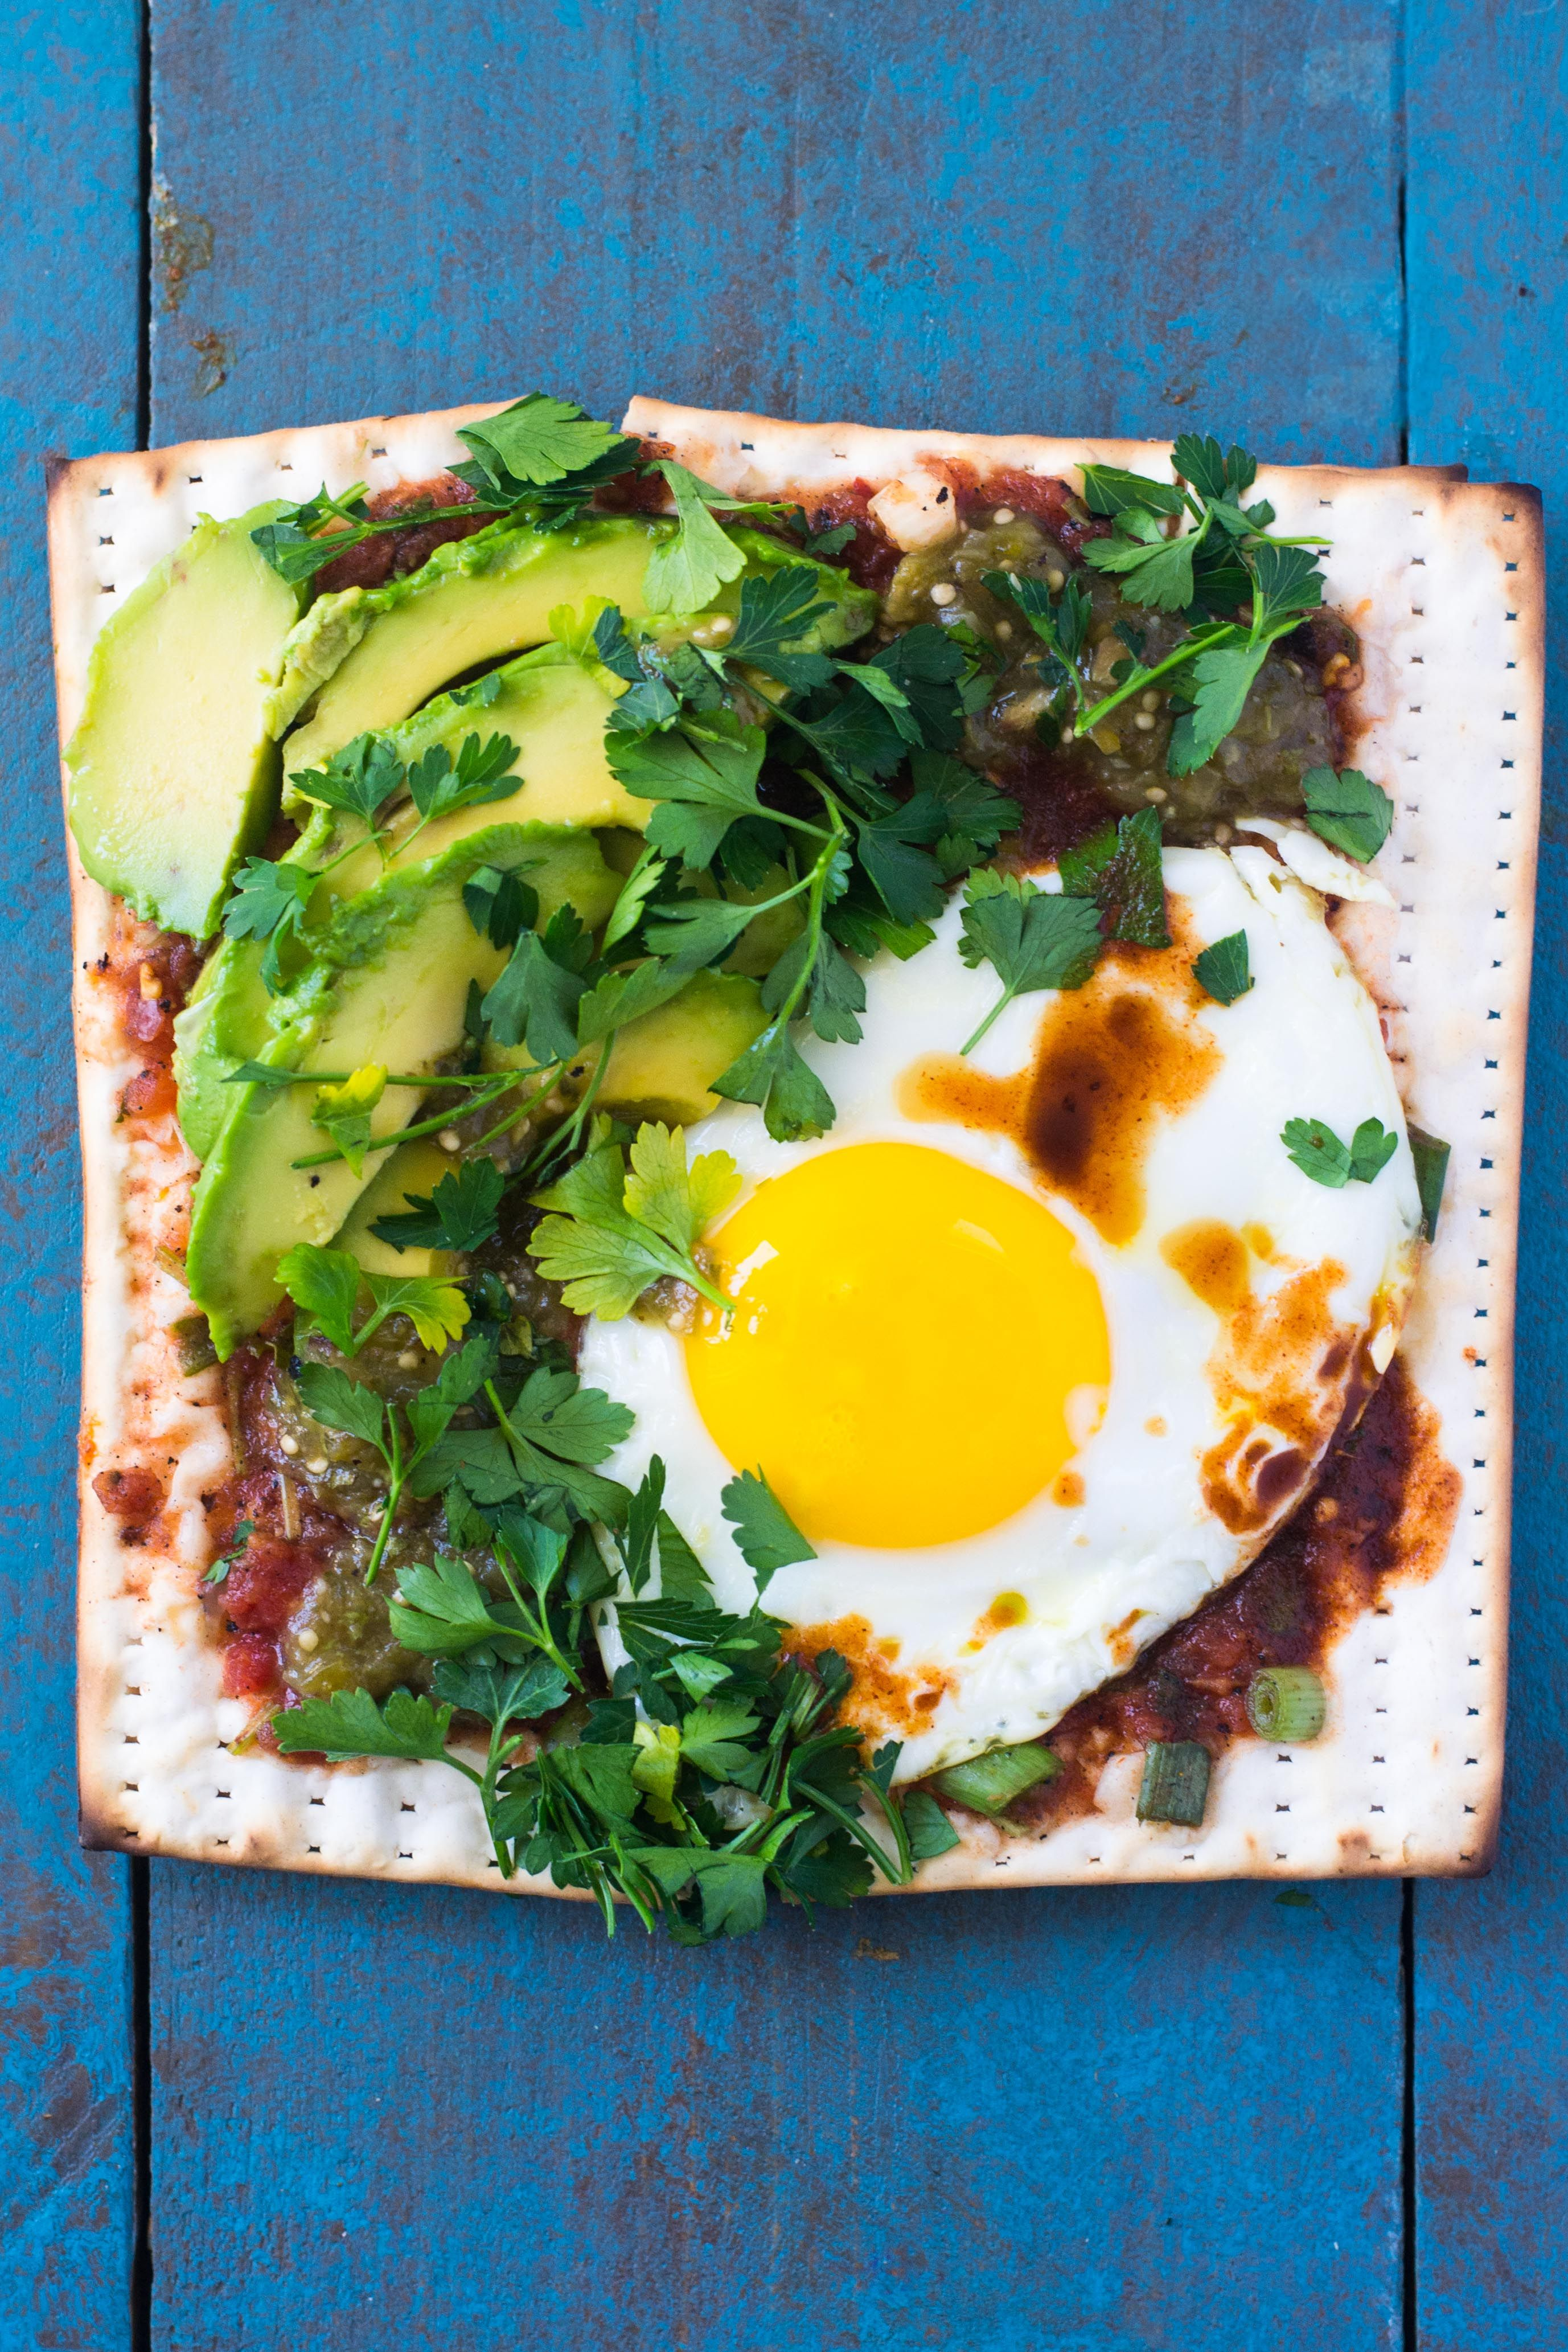 Matzo Juevos Rancheros and Other Toppings from Around the World